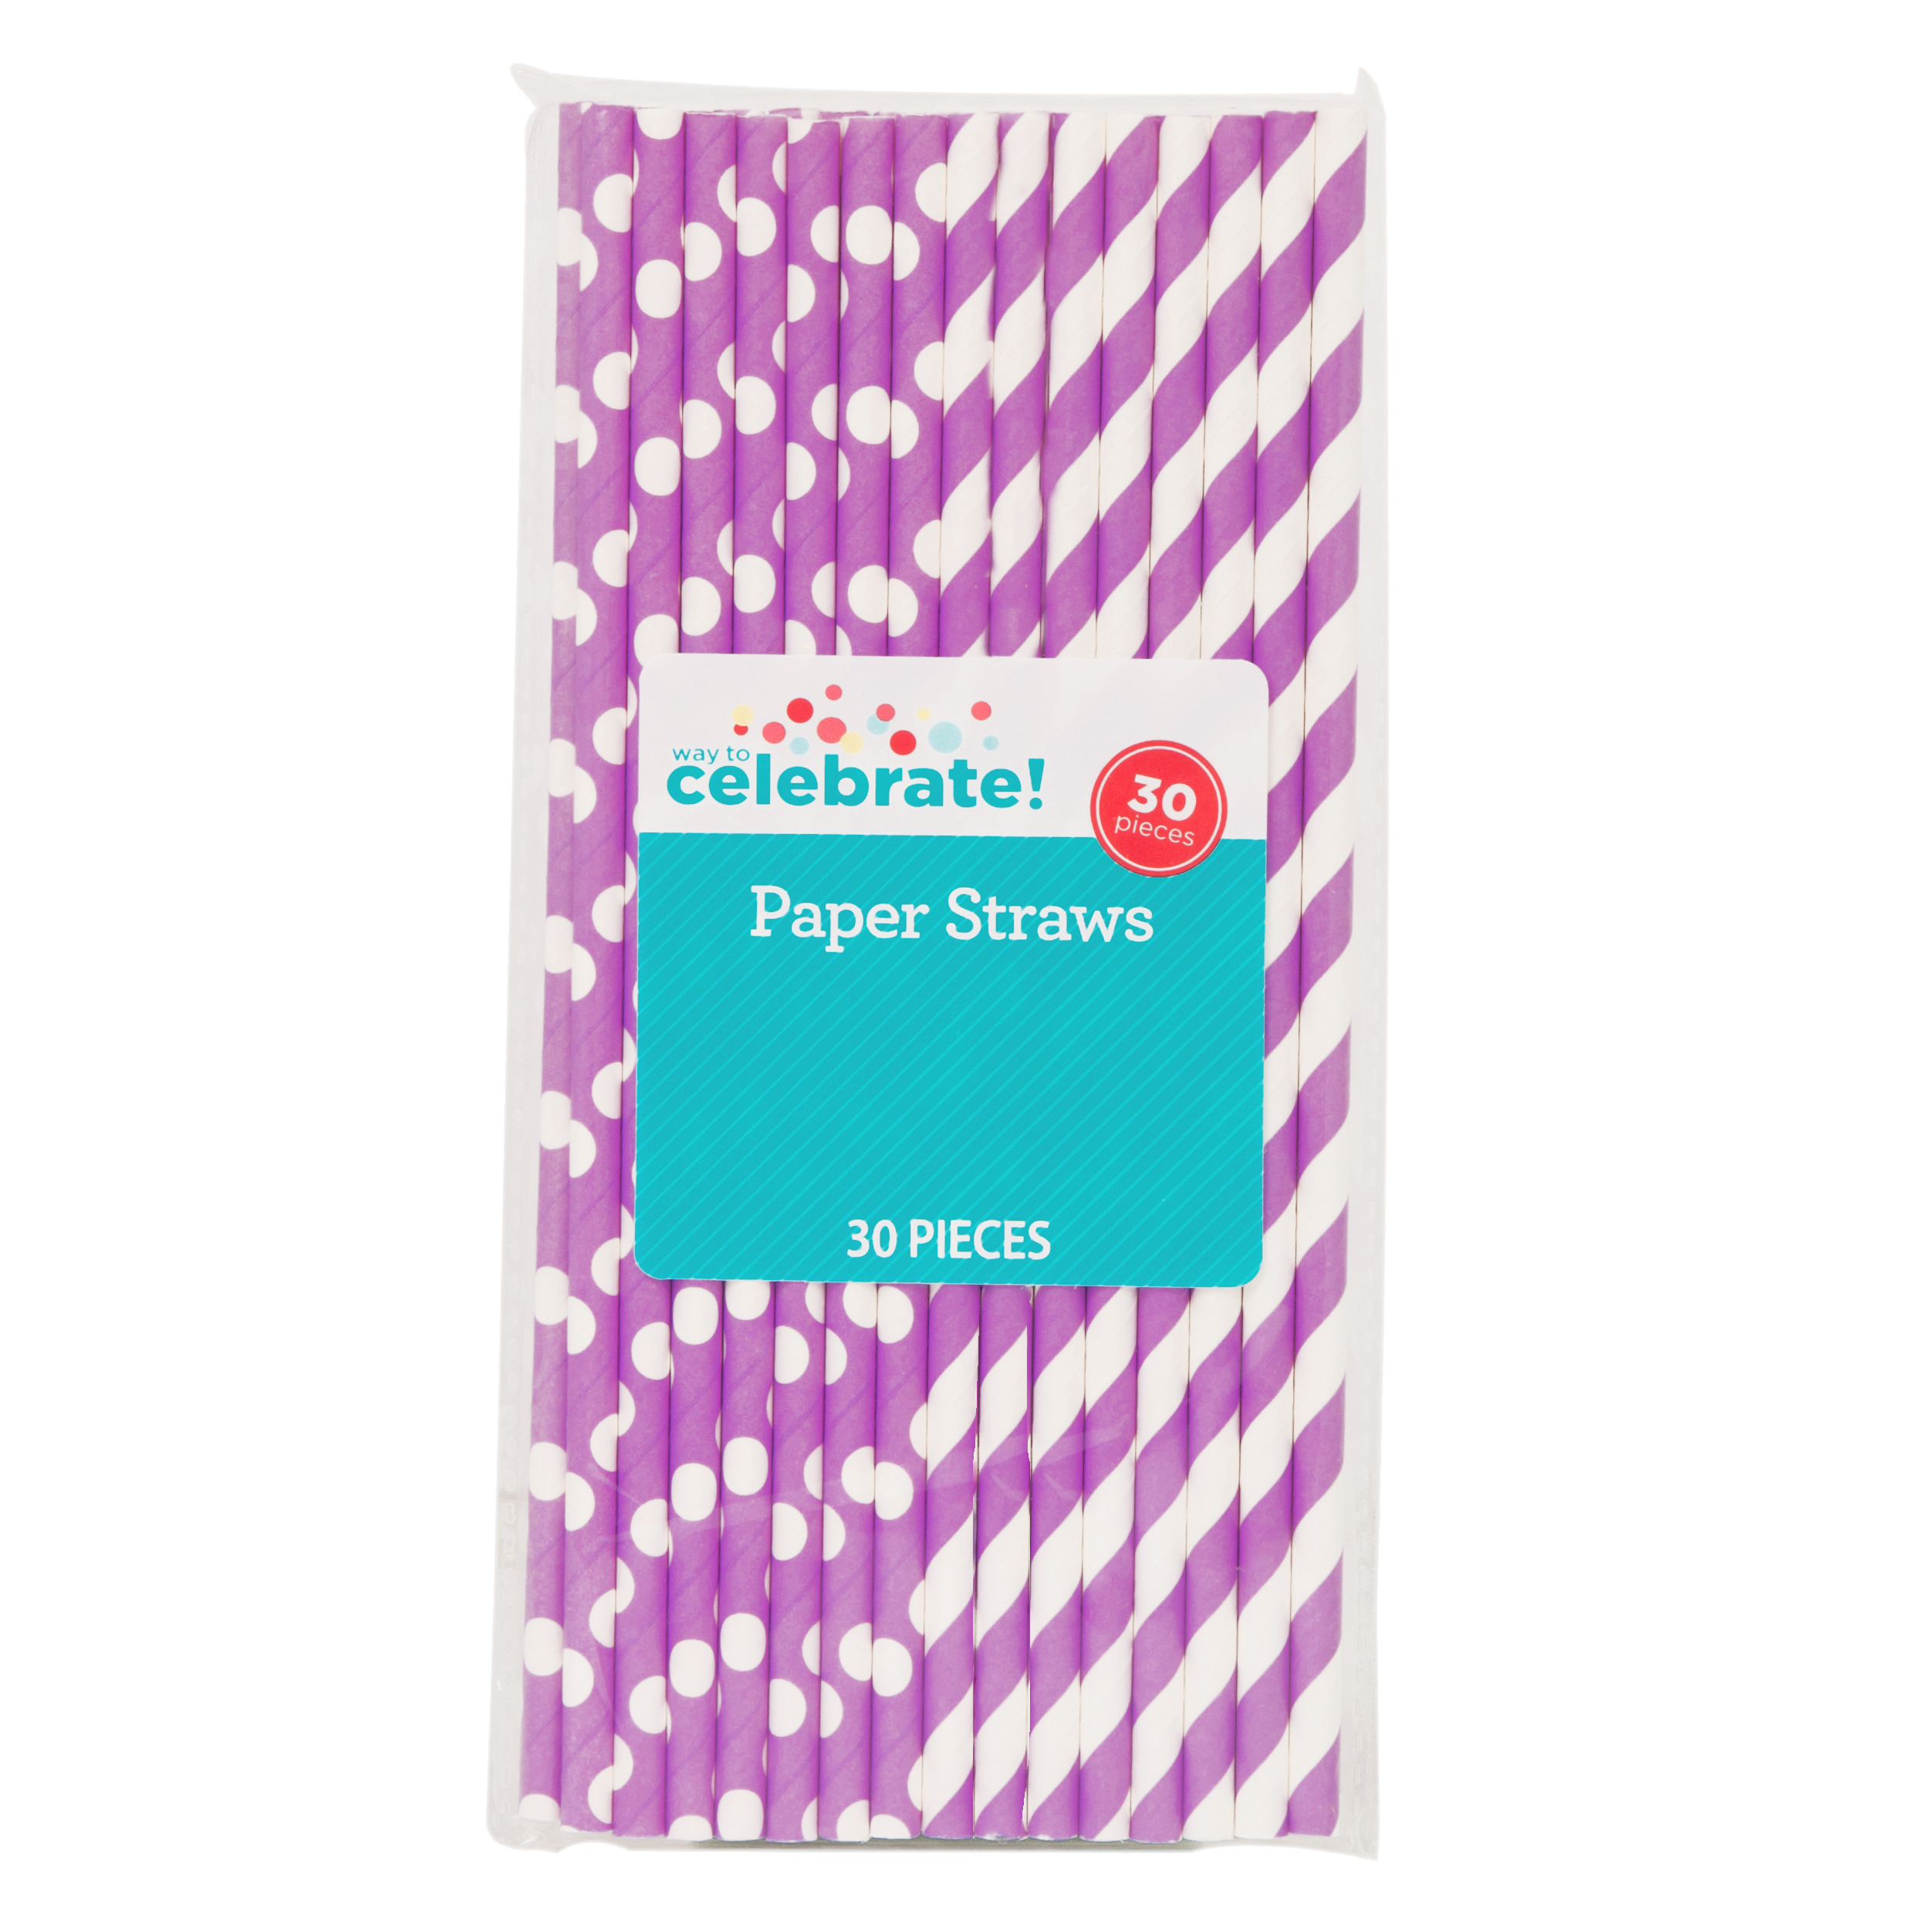 Polka Dot & Striped Paper Straws, 8.25 in, Neon Purple, 30ct